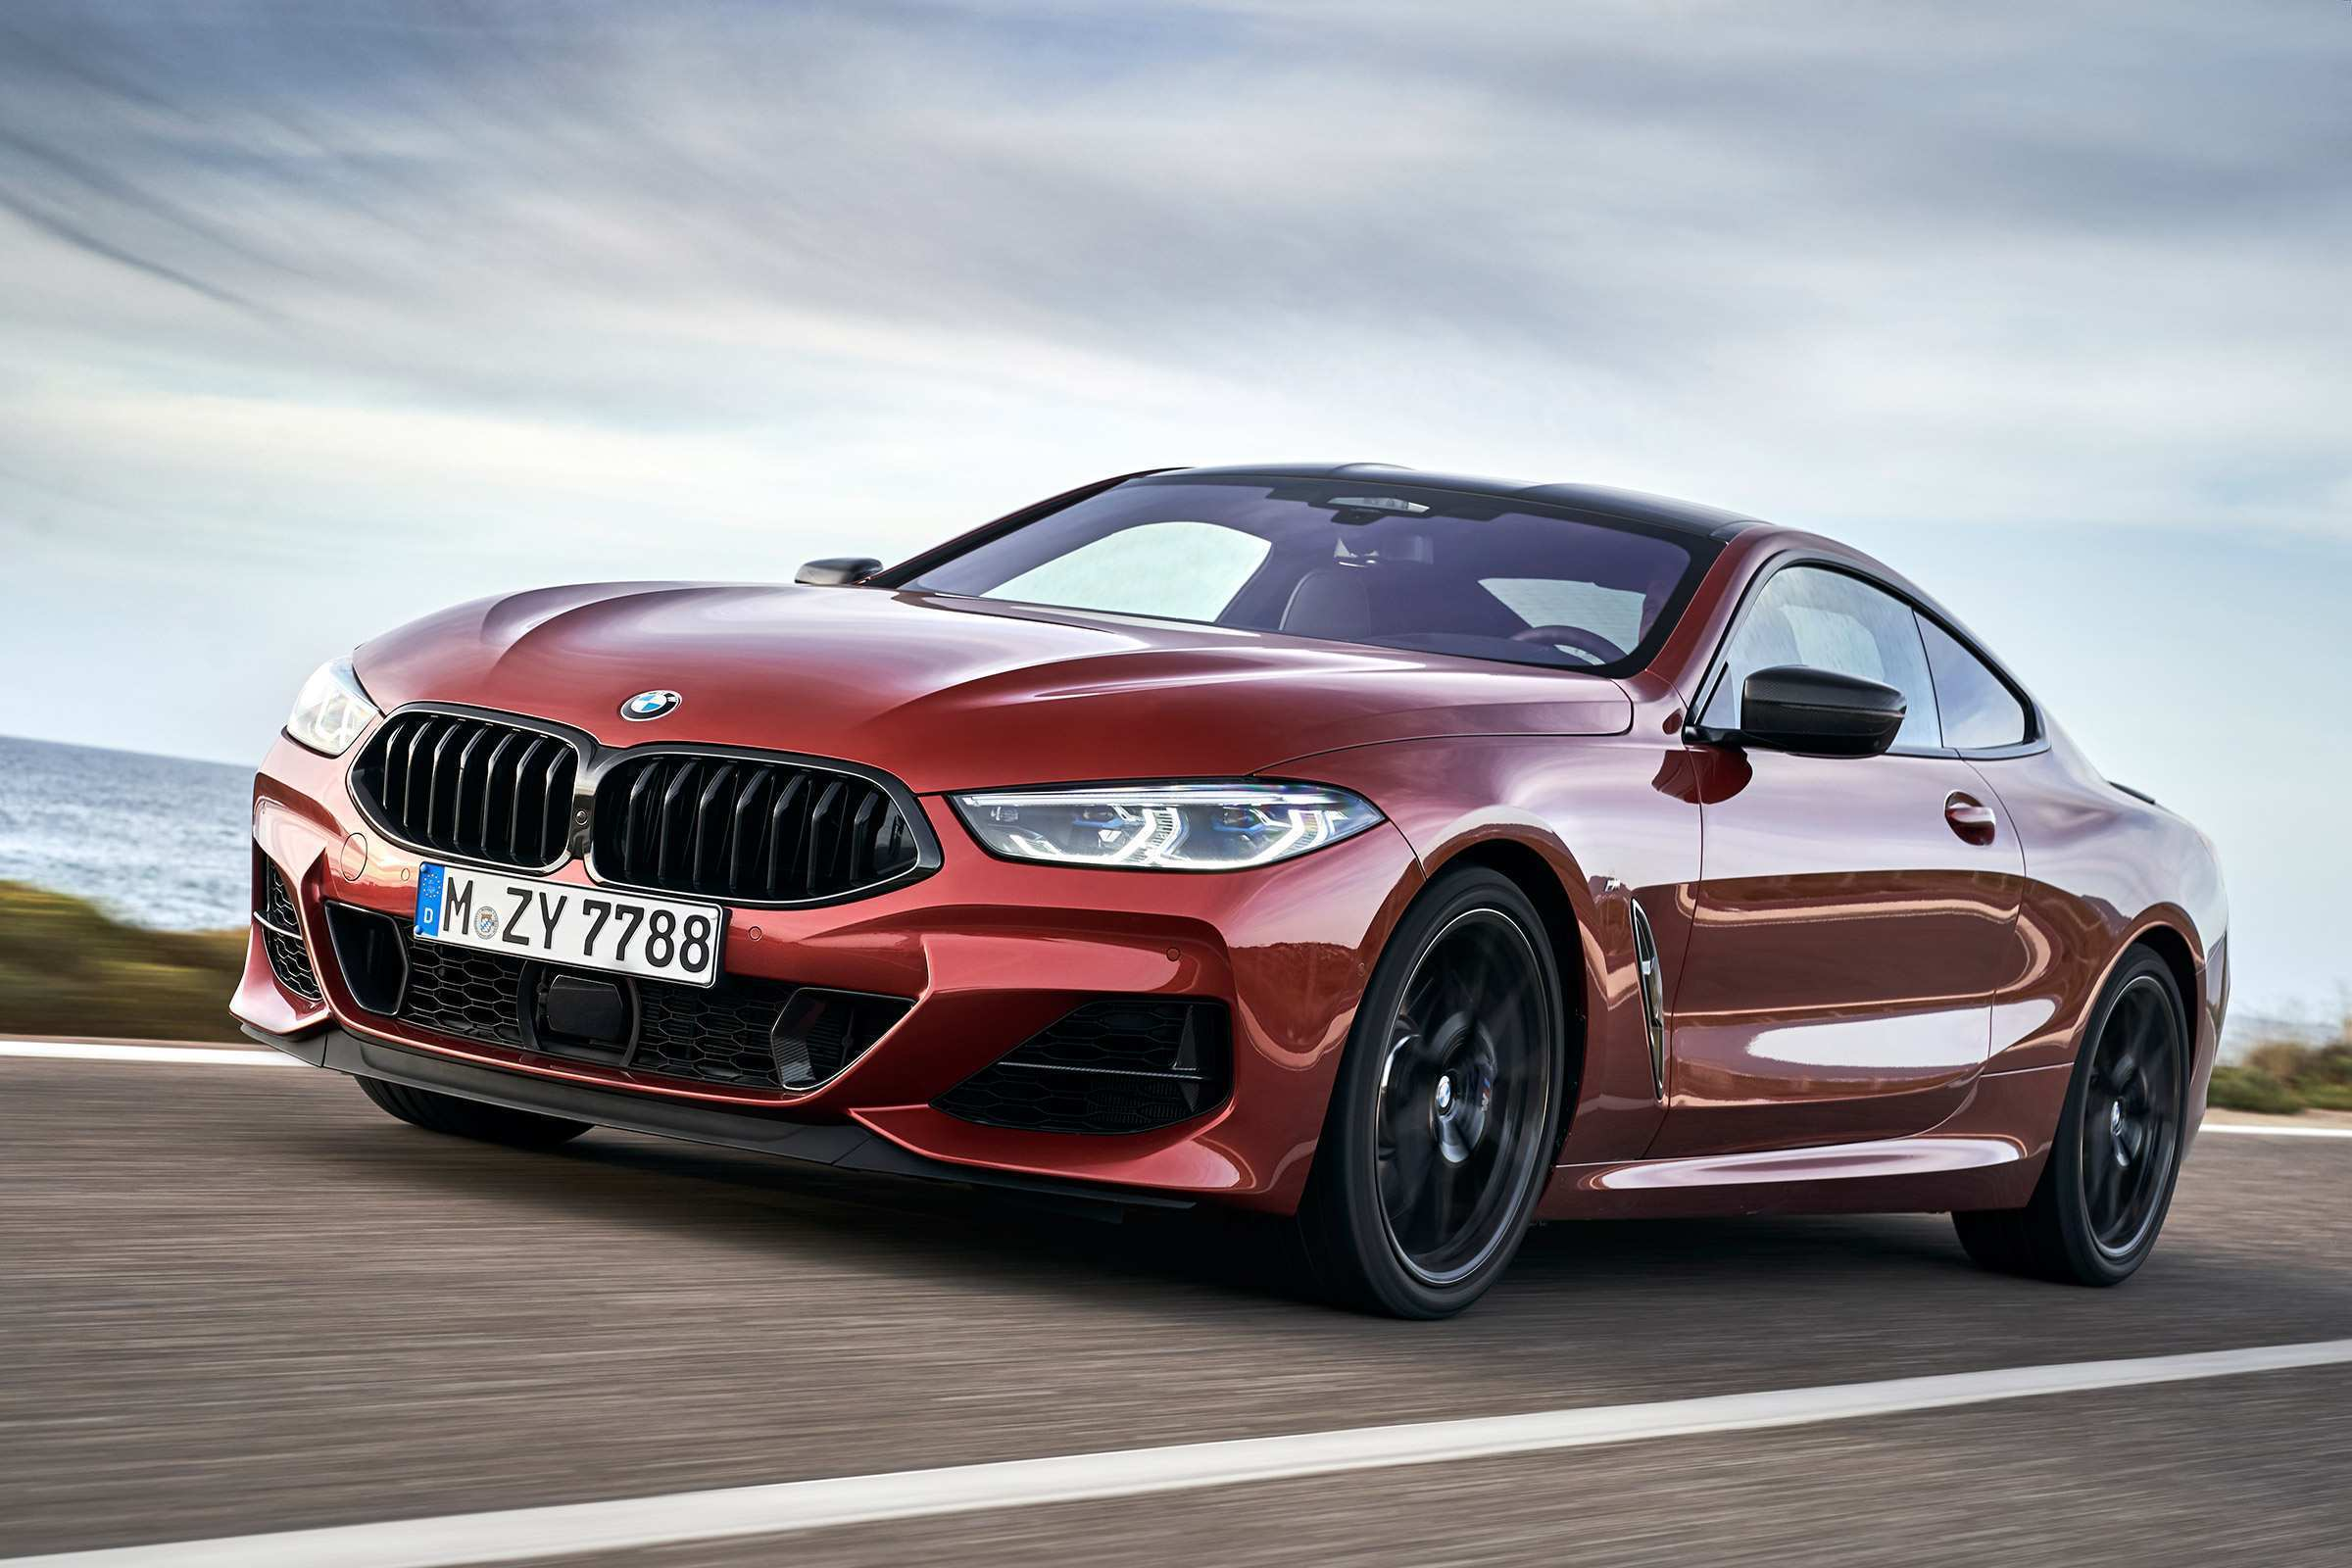 60 All New 2020 Bmw 8 Series Price Model with 2020 Bmw 8 Series Price